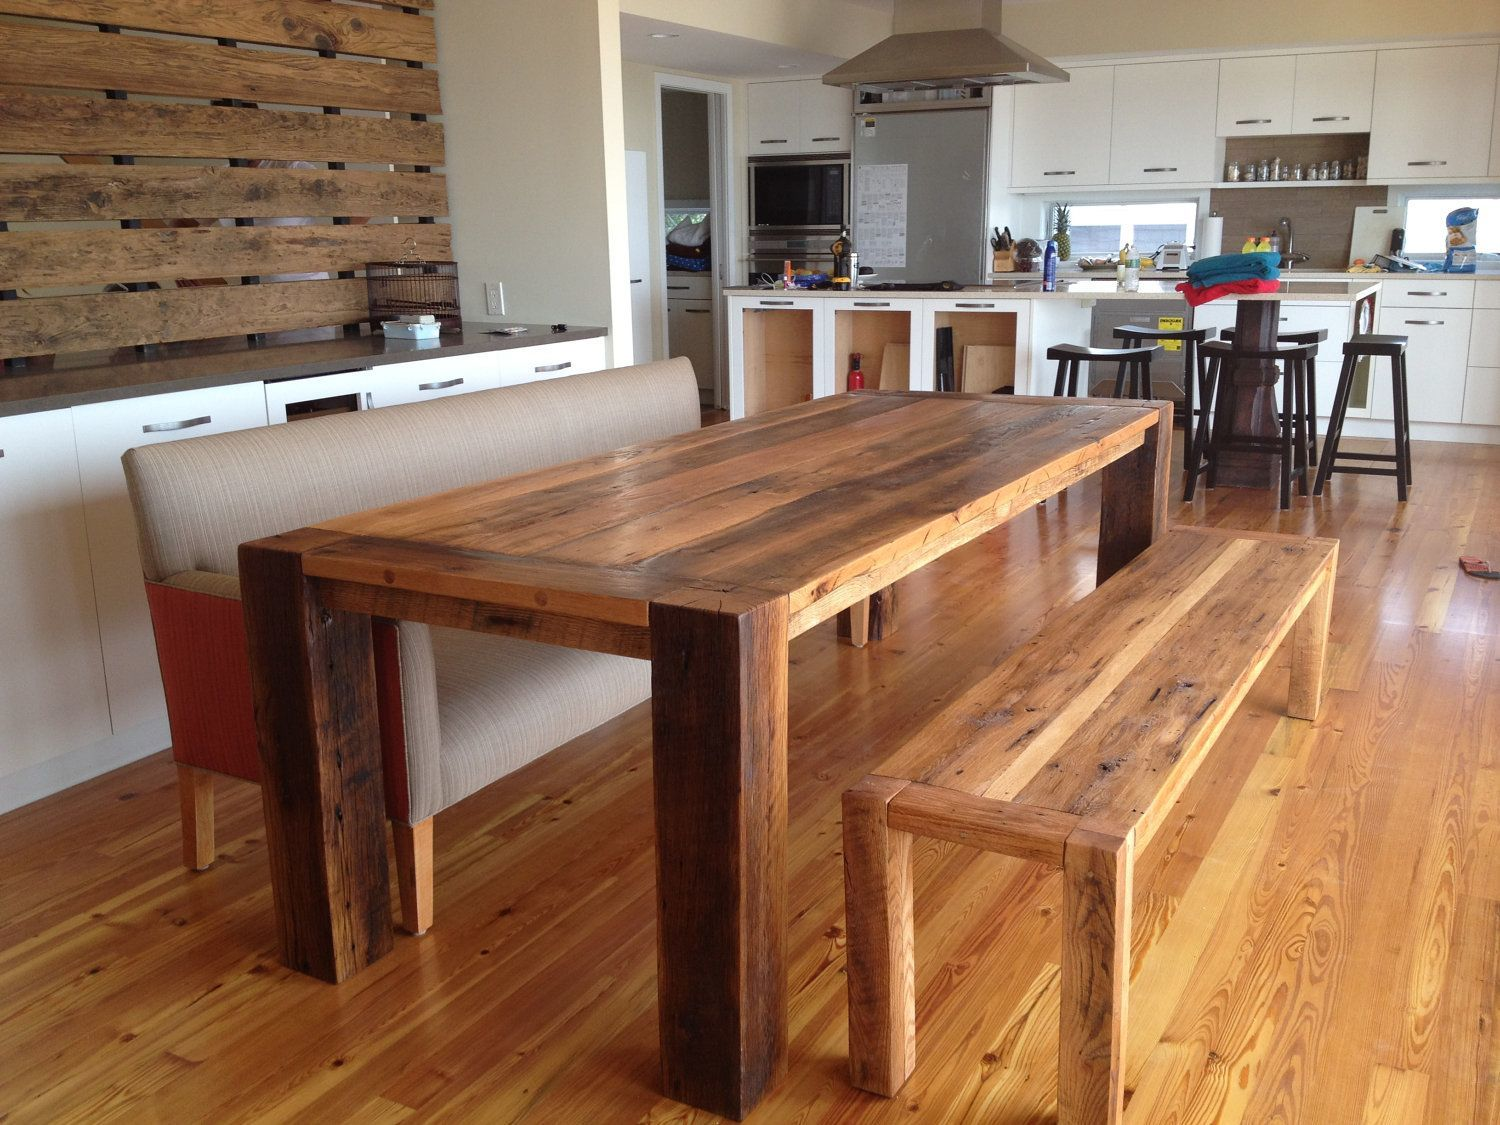 Advantages of the wood table